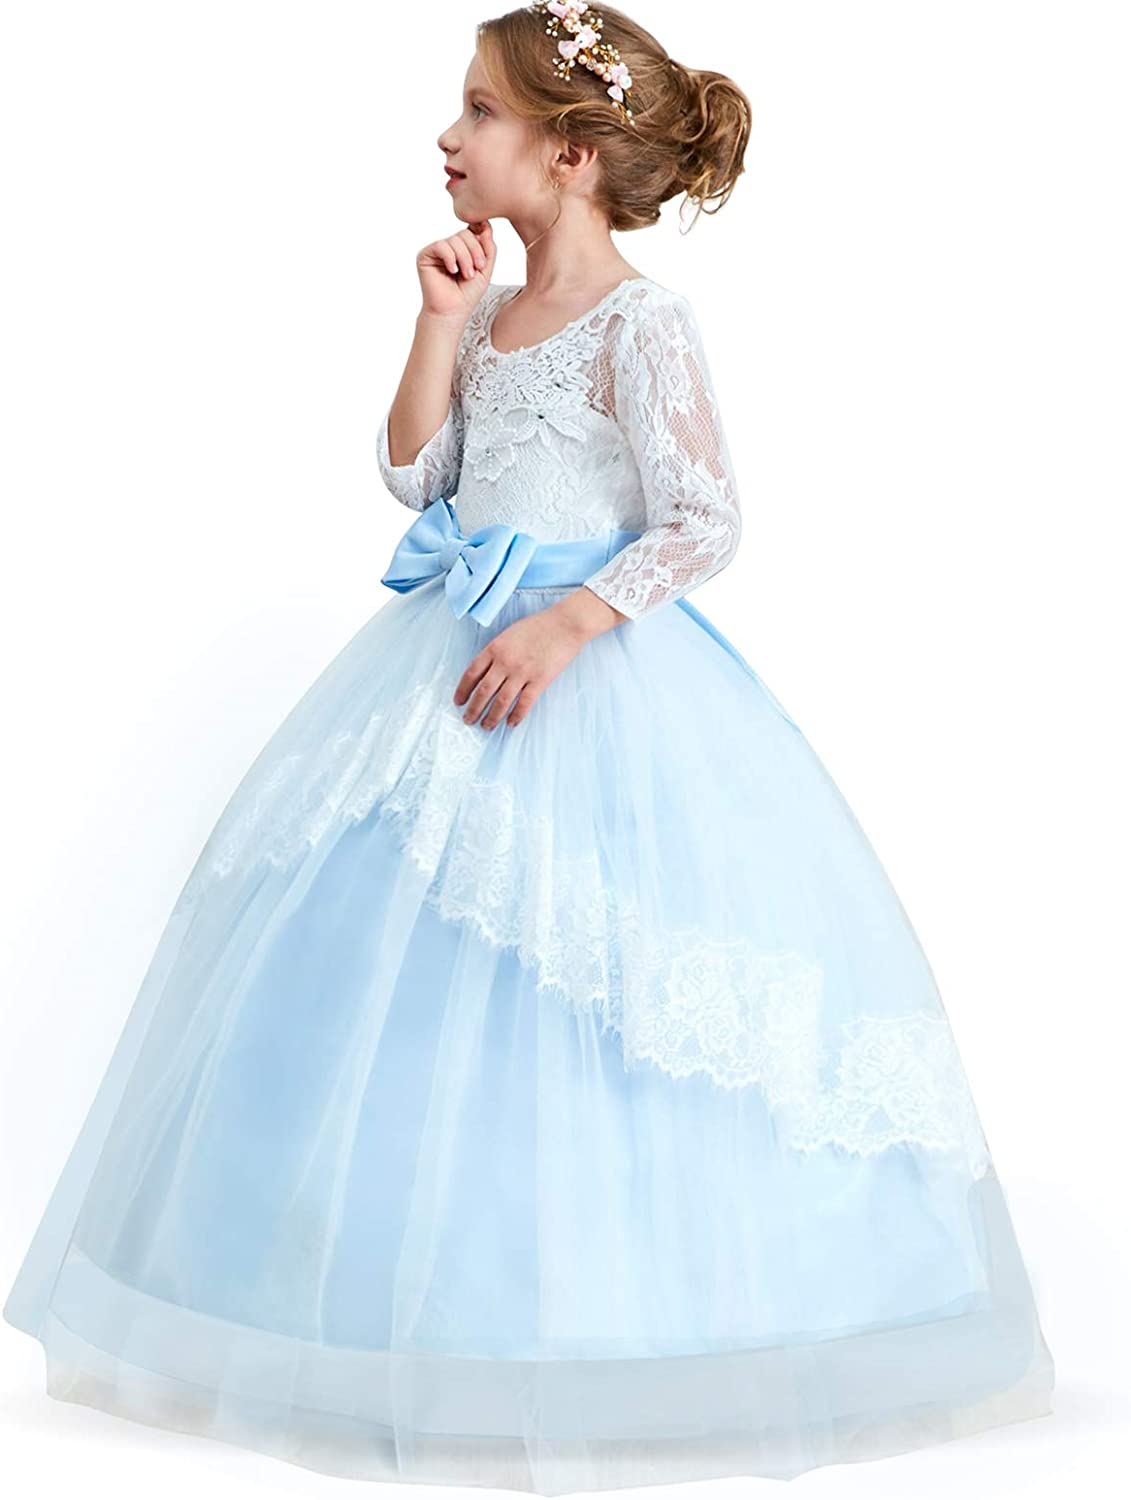 B07DQNSQ4R TTYAOVO Girls Embroidery Princess Dress Wedding Birthday Party Long Tail Prom Gowns 616Z0Q6KgnL